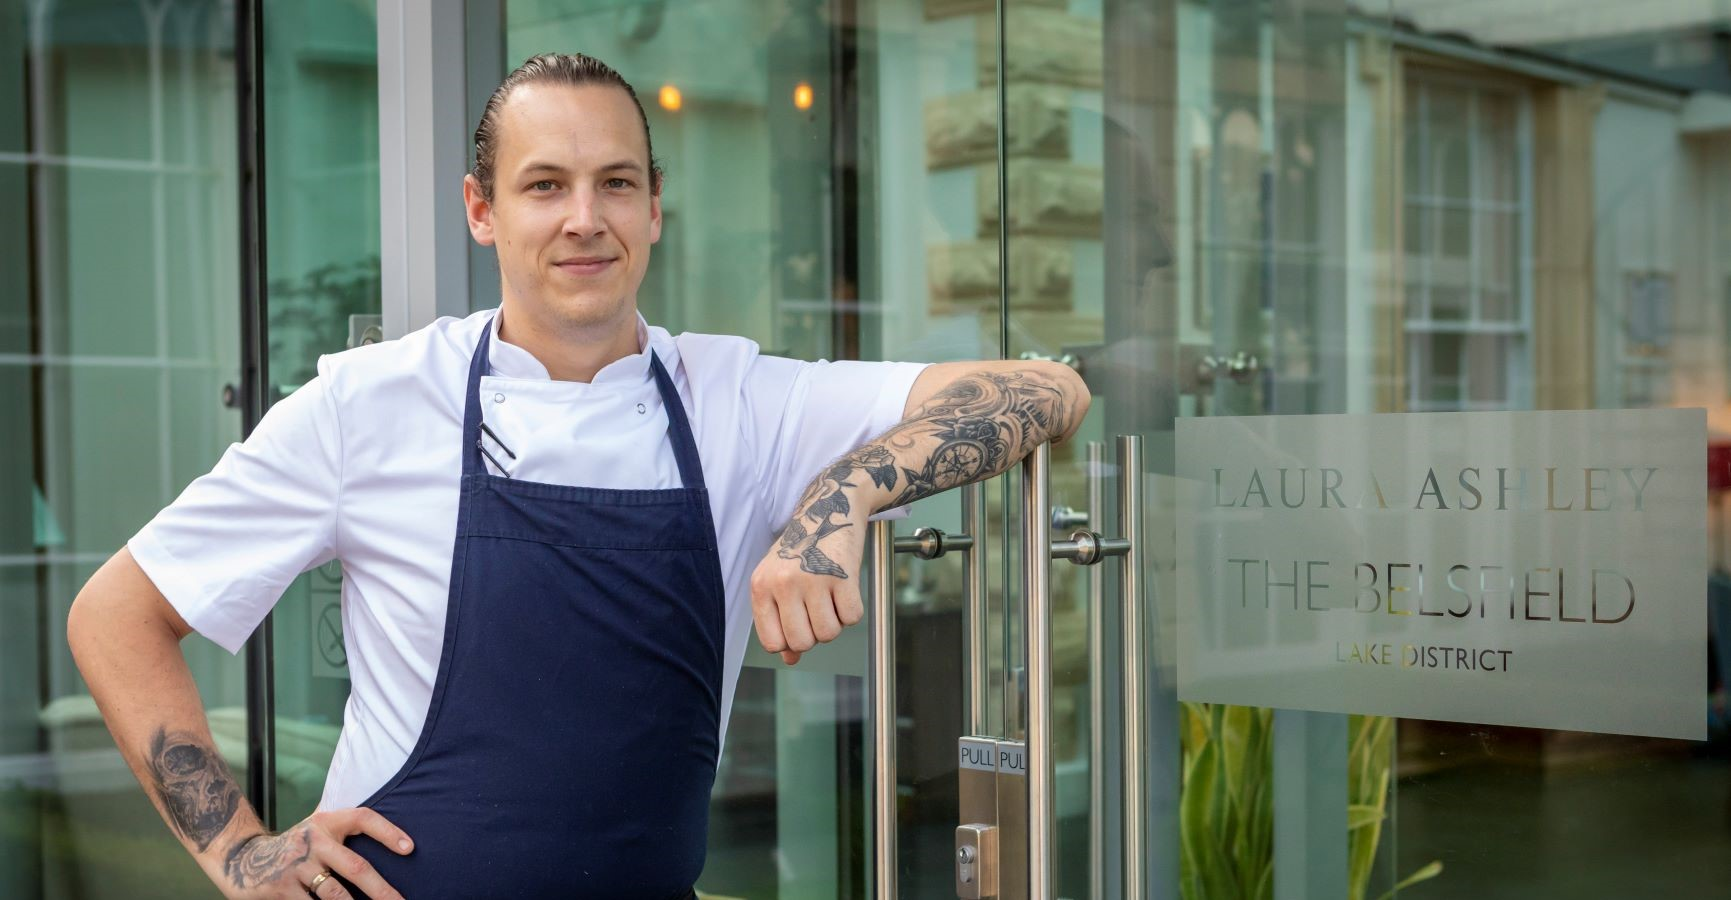 Scott Harrowing – Head Chef at Laura Ashley Hotel The Belsfield, Lake District (2)